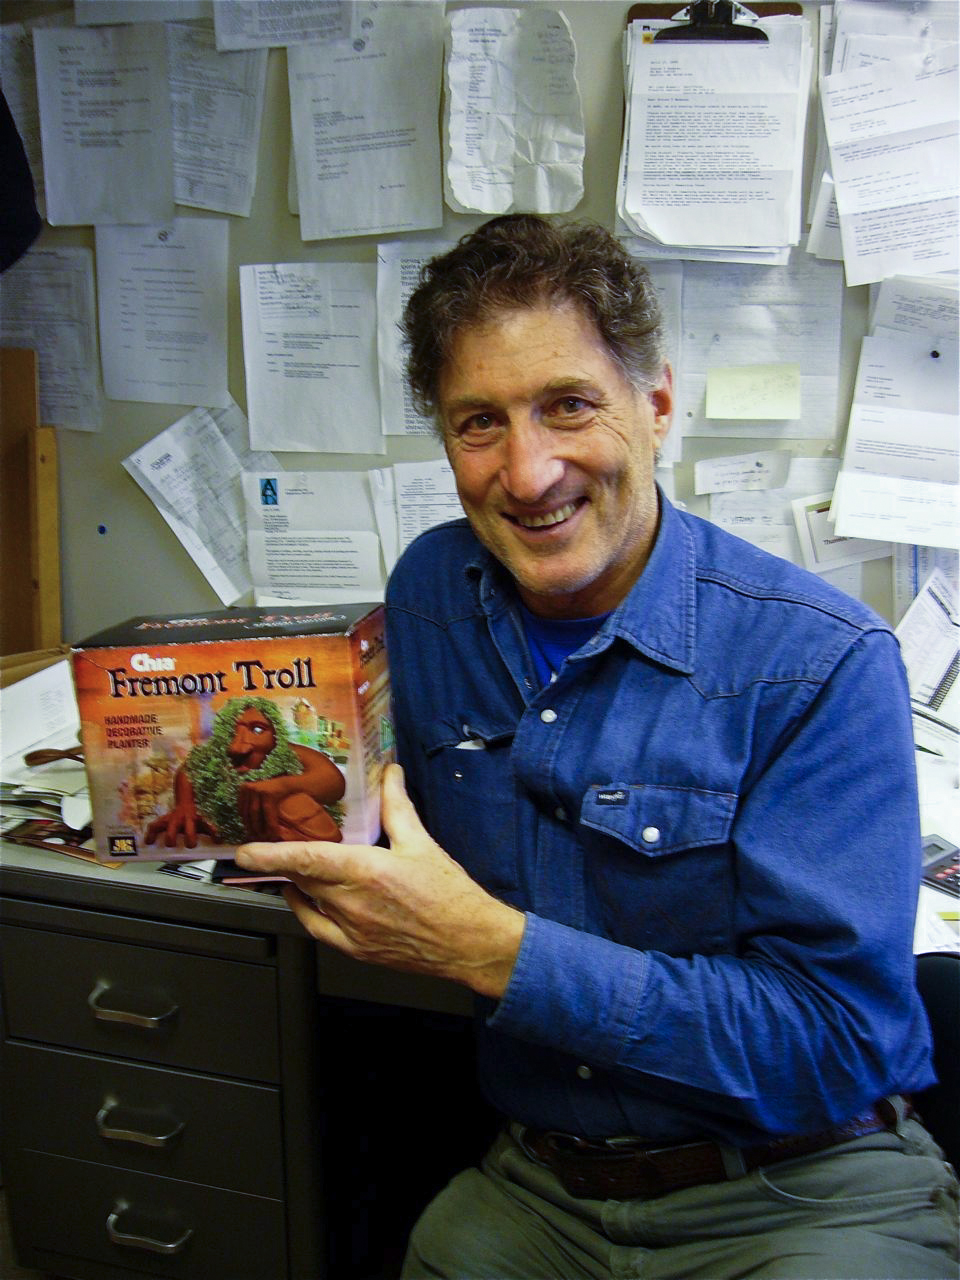 Architecture Professor Steve Badanes with the Chia version of the Fremont Troll he helped design.